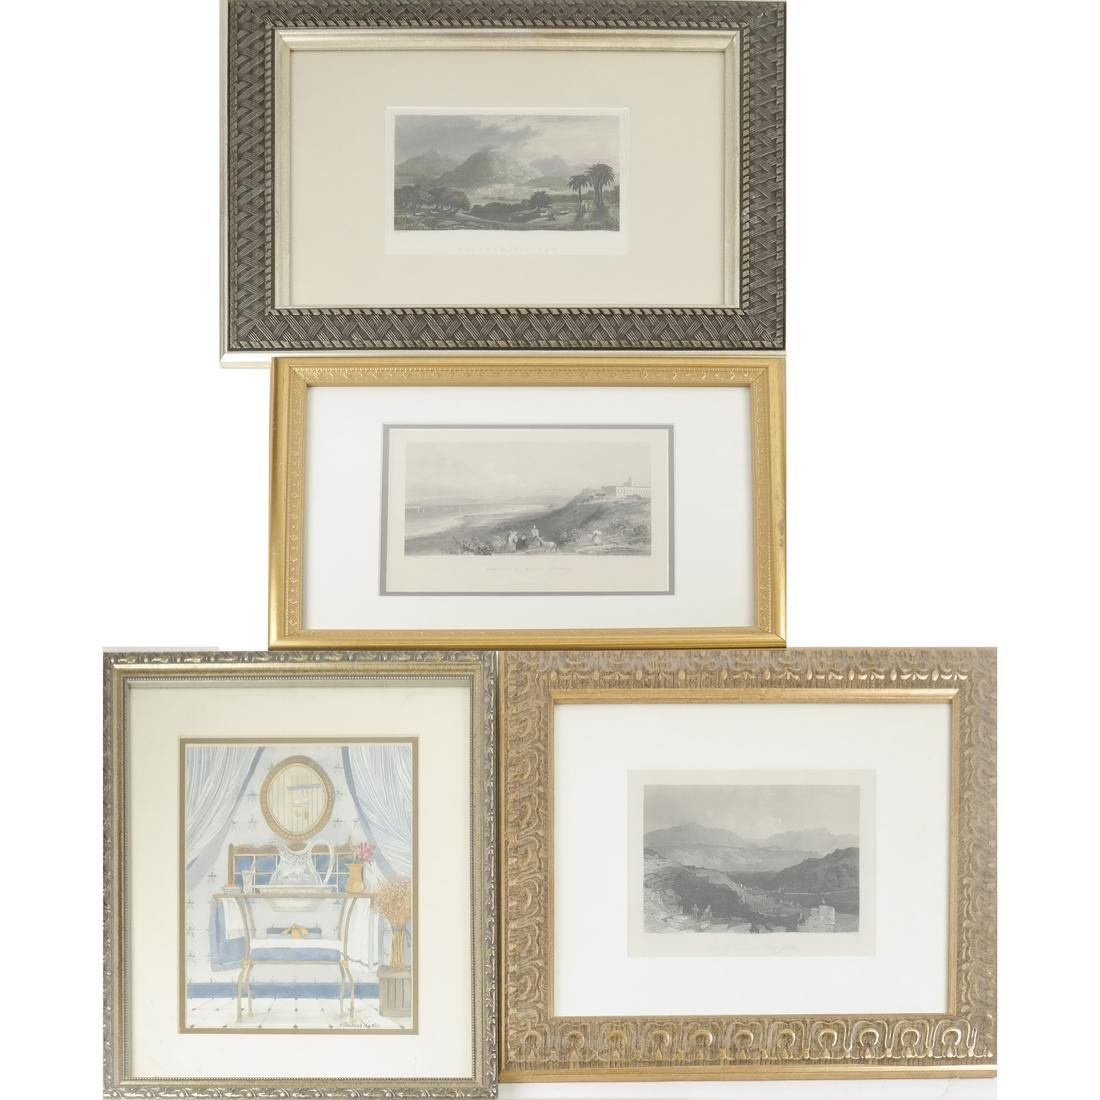 Four Works of Art - Lithograph Landscapes